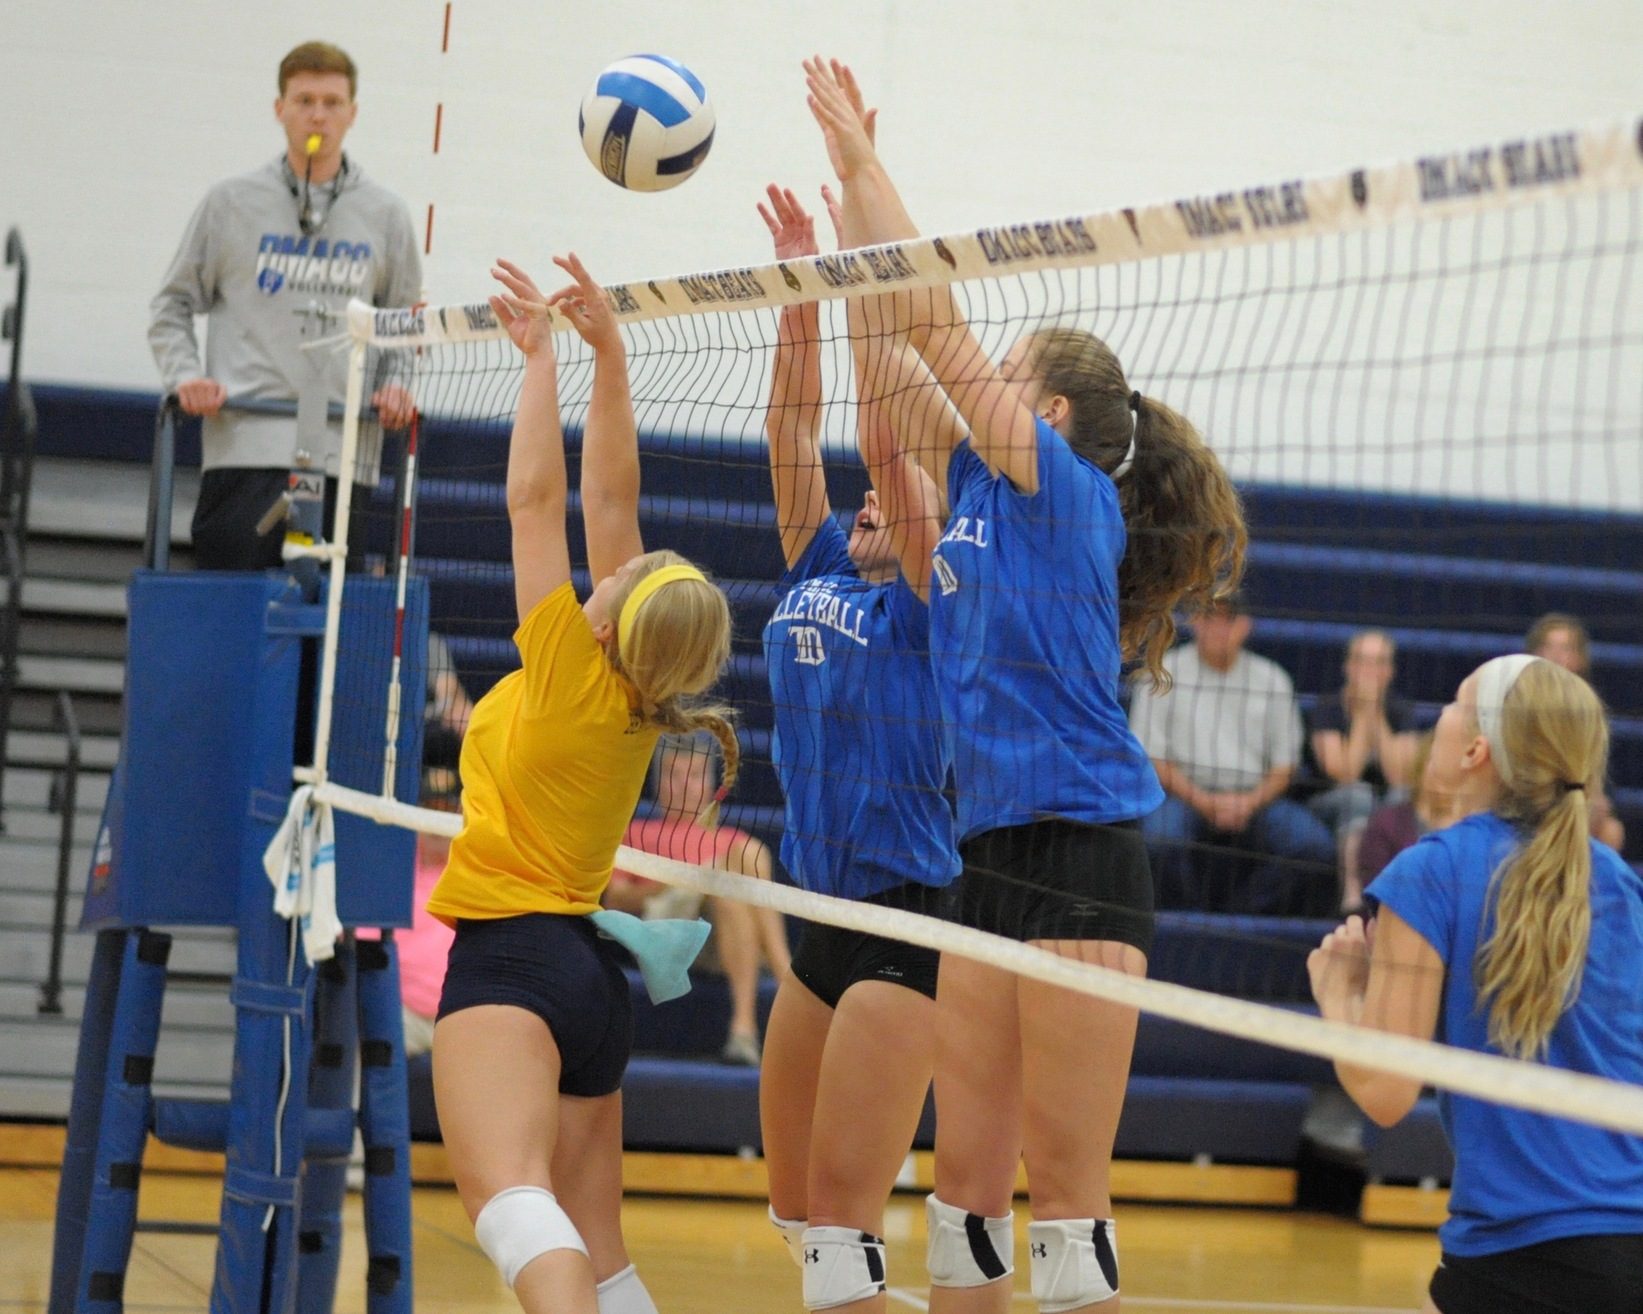 Lauren Rieck going up for block